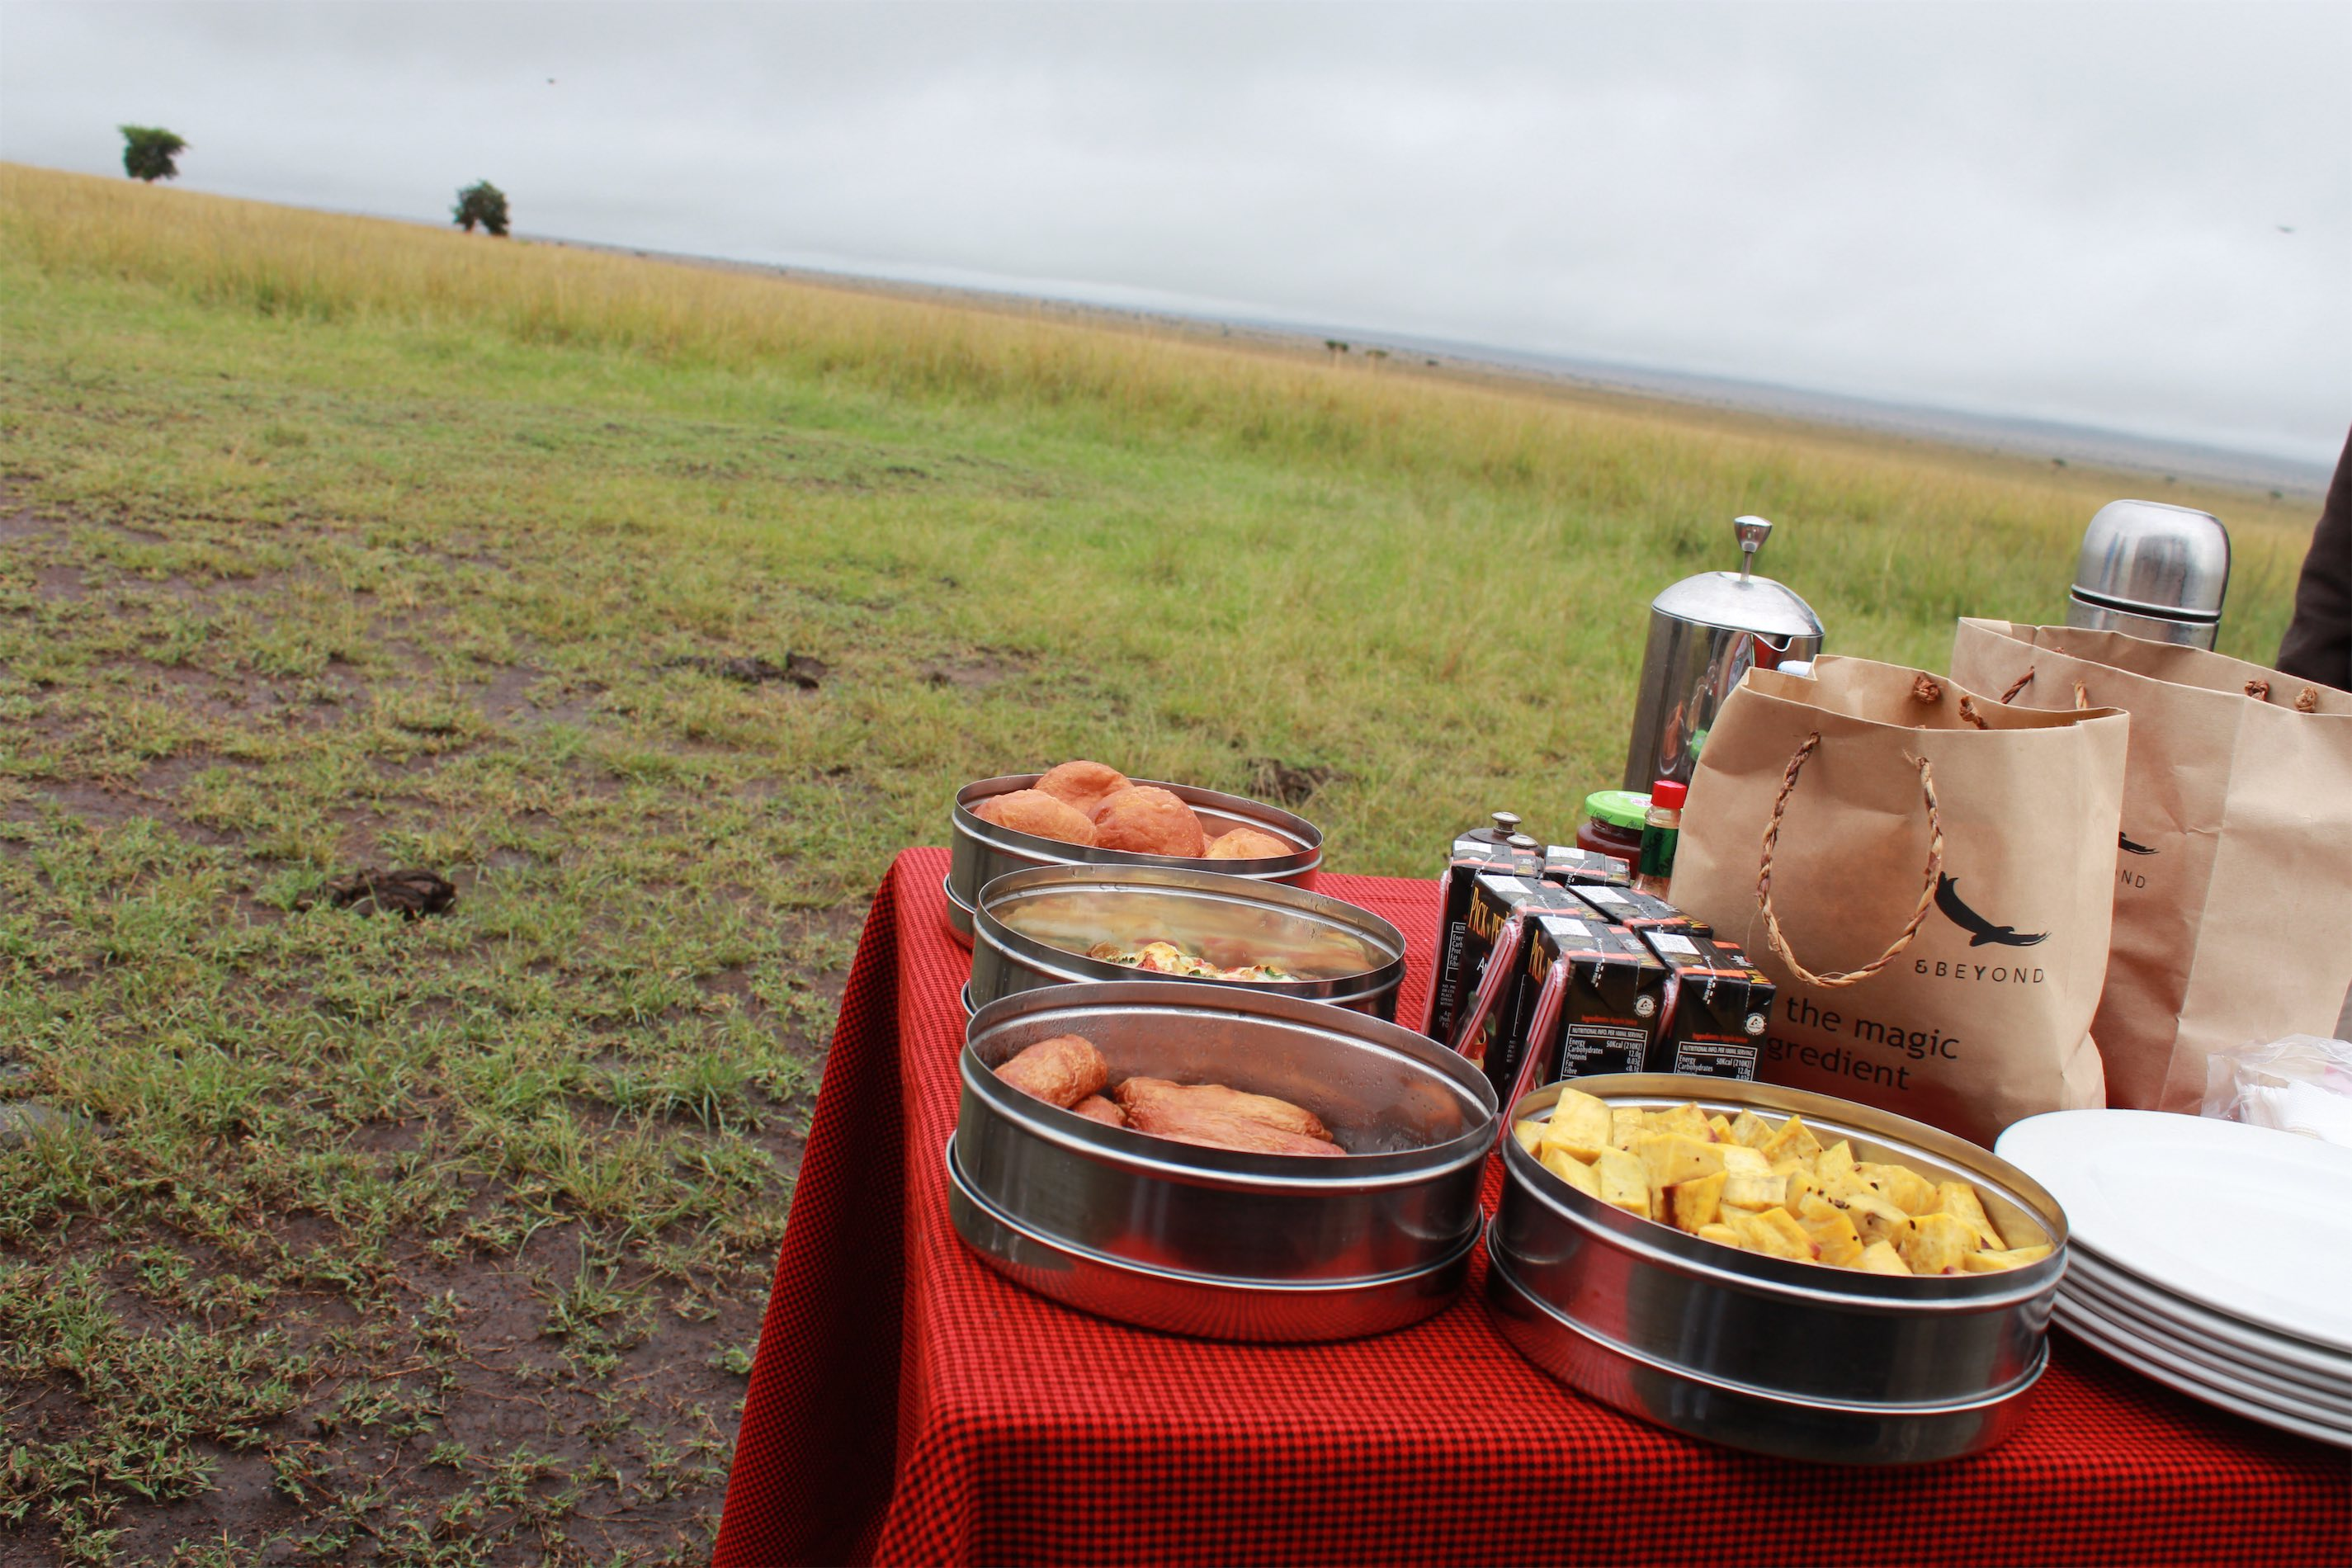 Breakfast spread in the middle of the Masai Mara